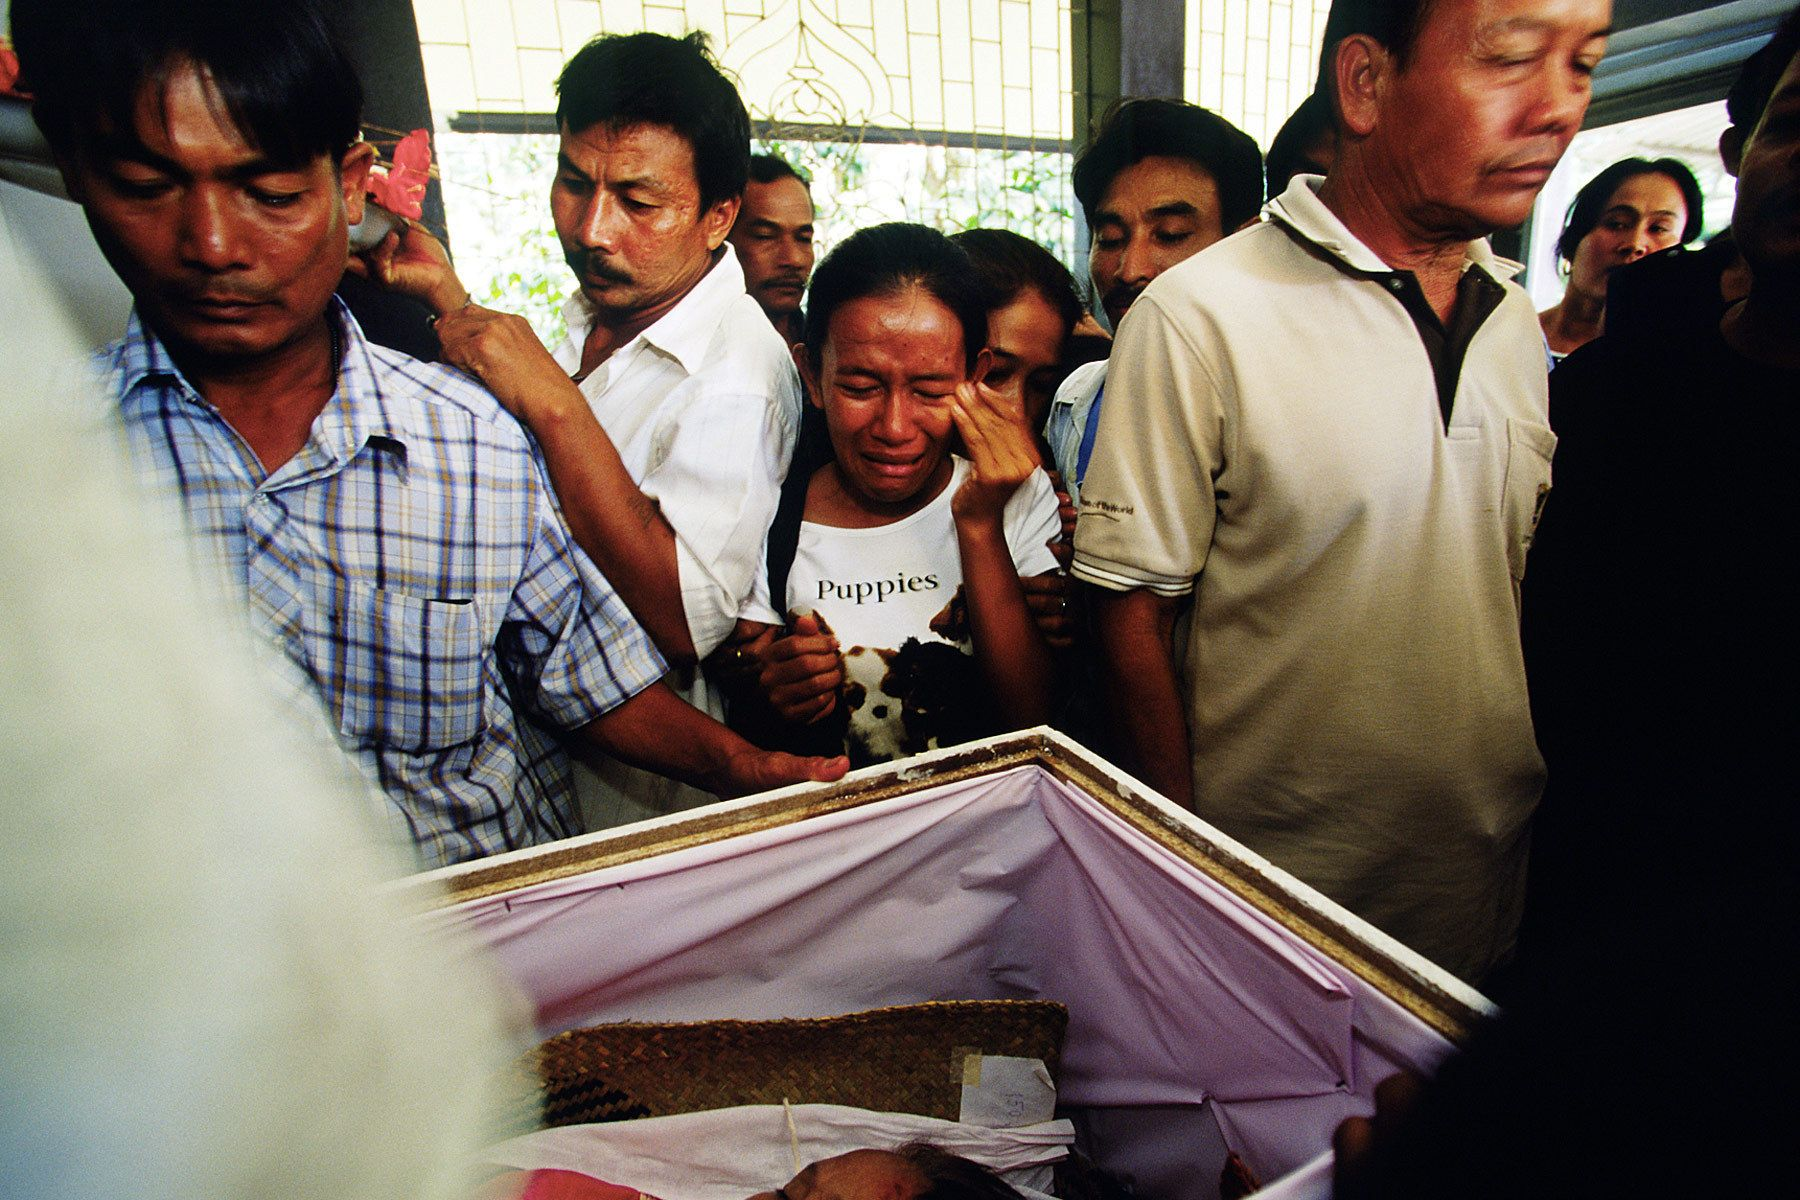 A daughter cries during a funeral of her mother at Buddhist temple.